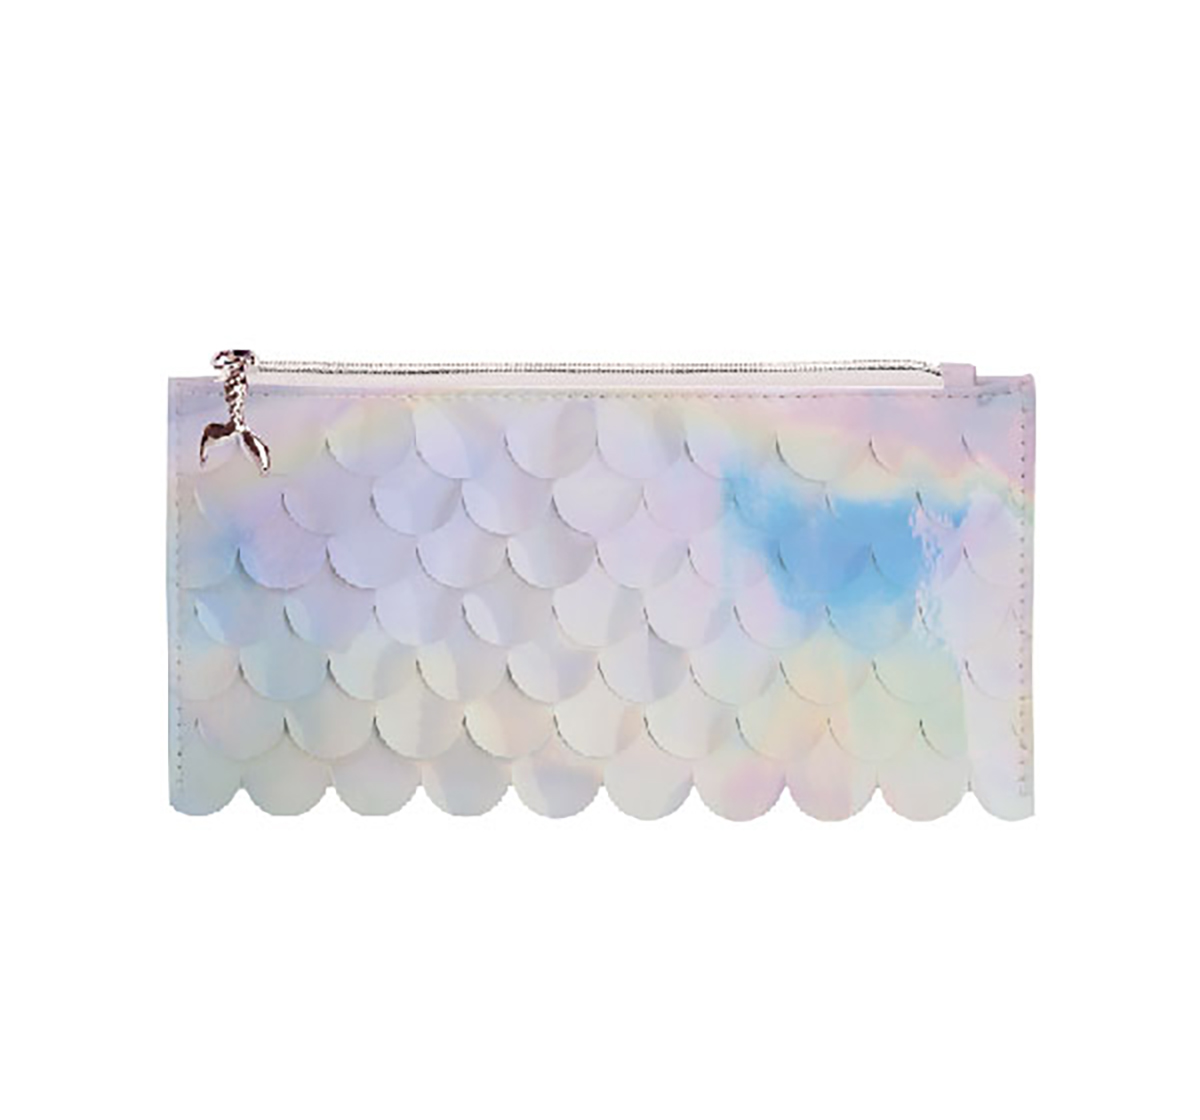 Syloon   Syloon Metallic - White Mermaid Scale Pencil Pouch Pencil Pouches & Boxes for Kids age 5Y+